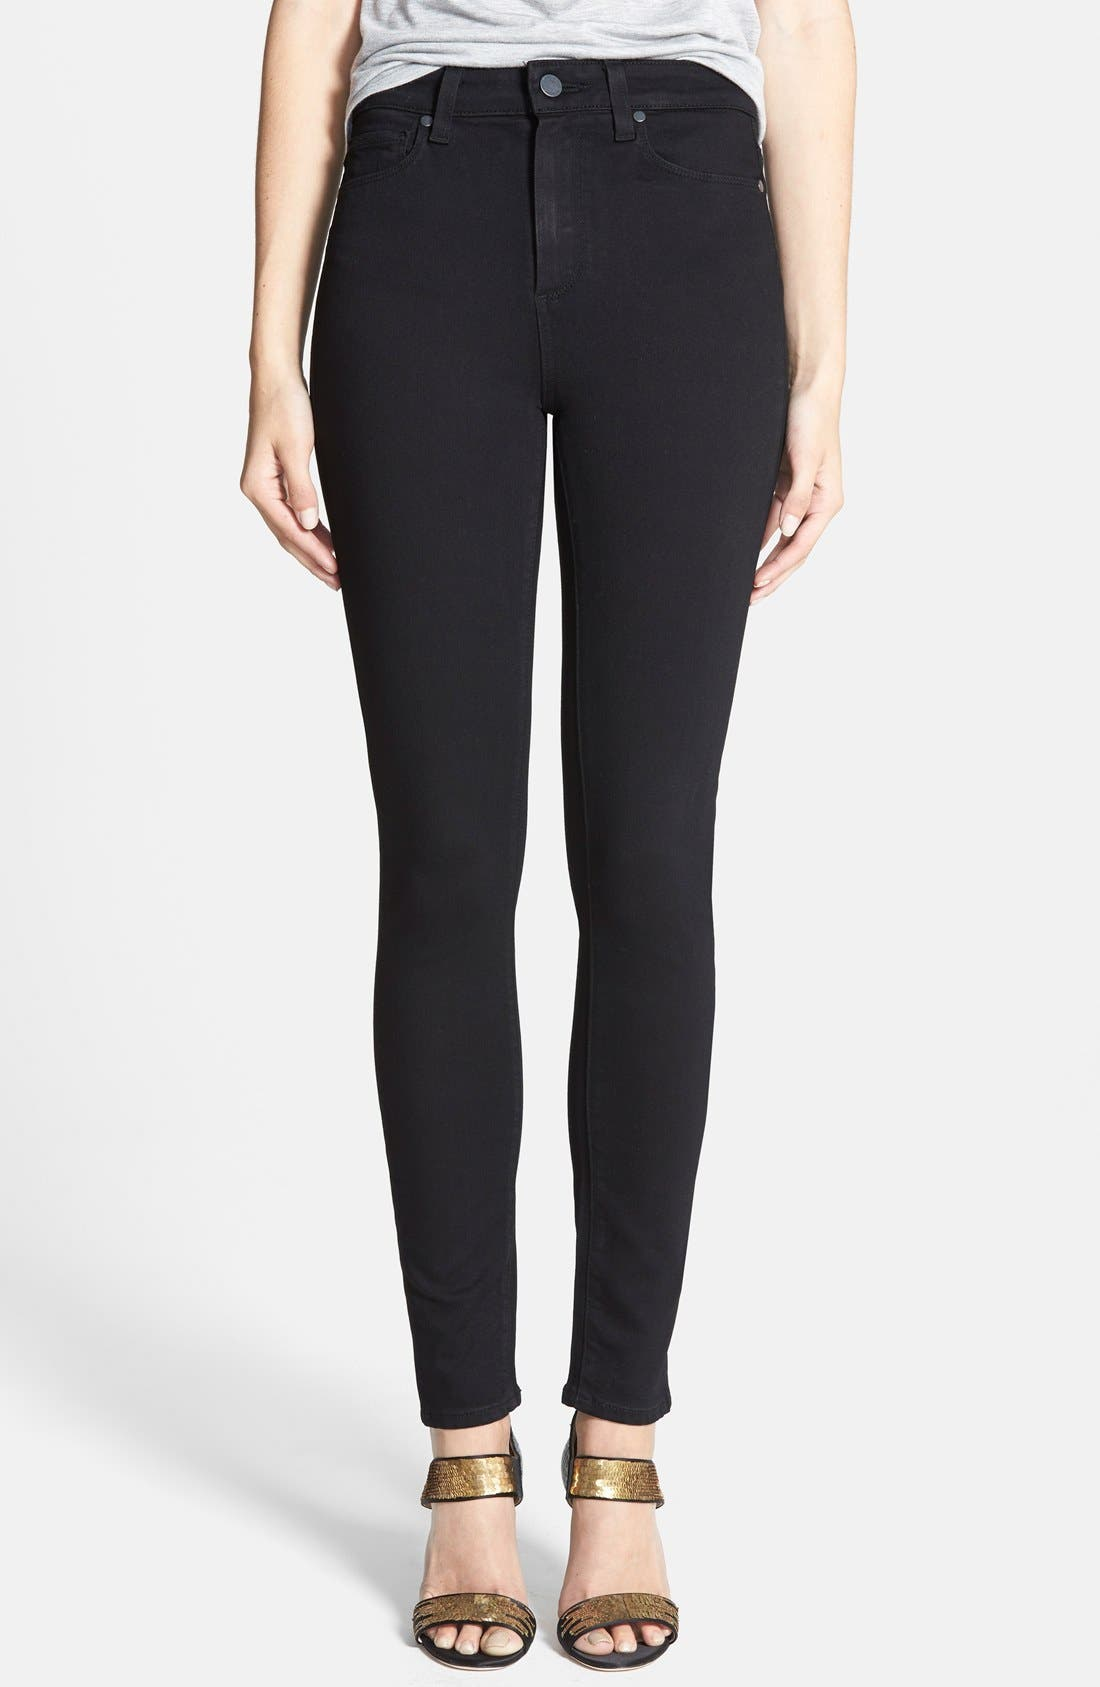 Transcend - Margot High Waist Ultra Skinny Jeans,                         Main,                         color, BLACK SHADOW